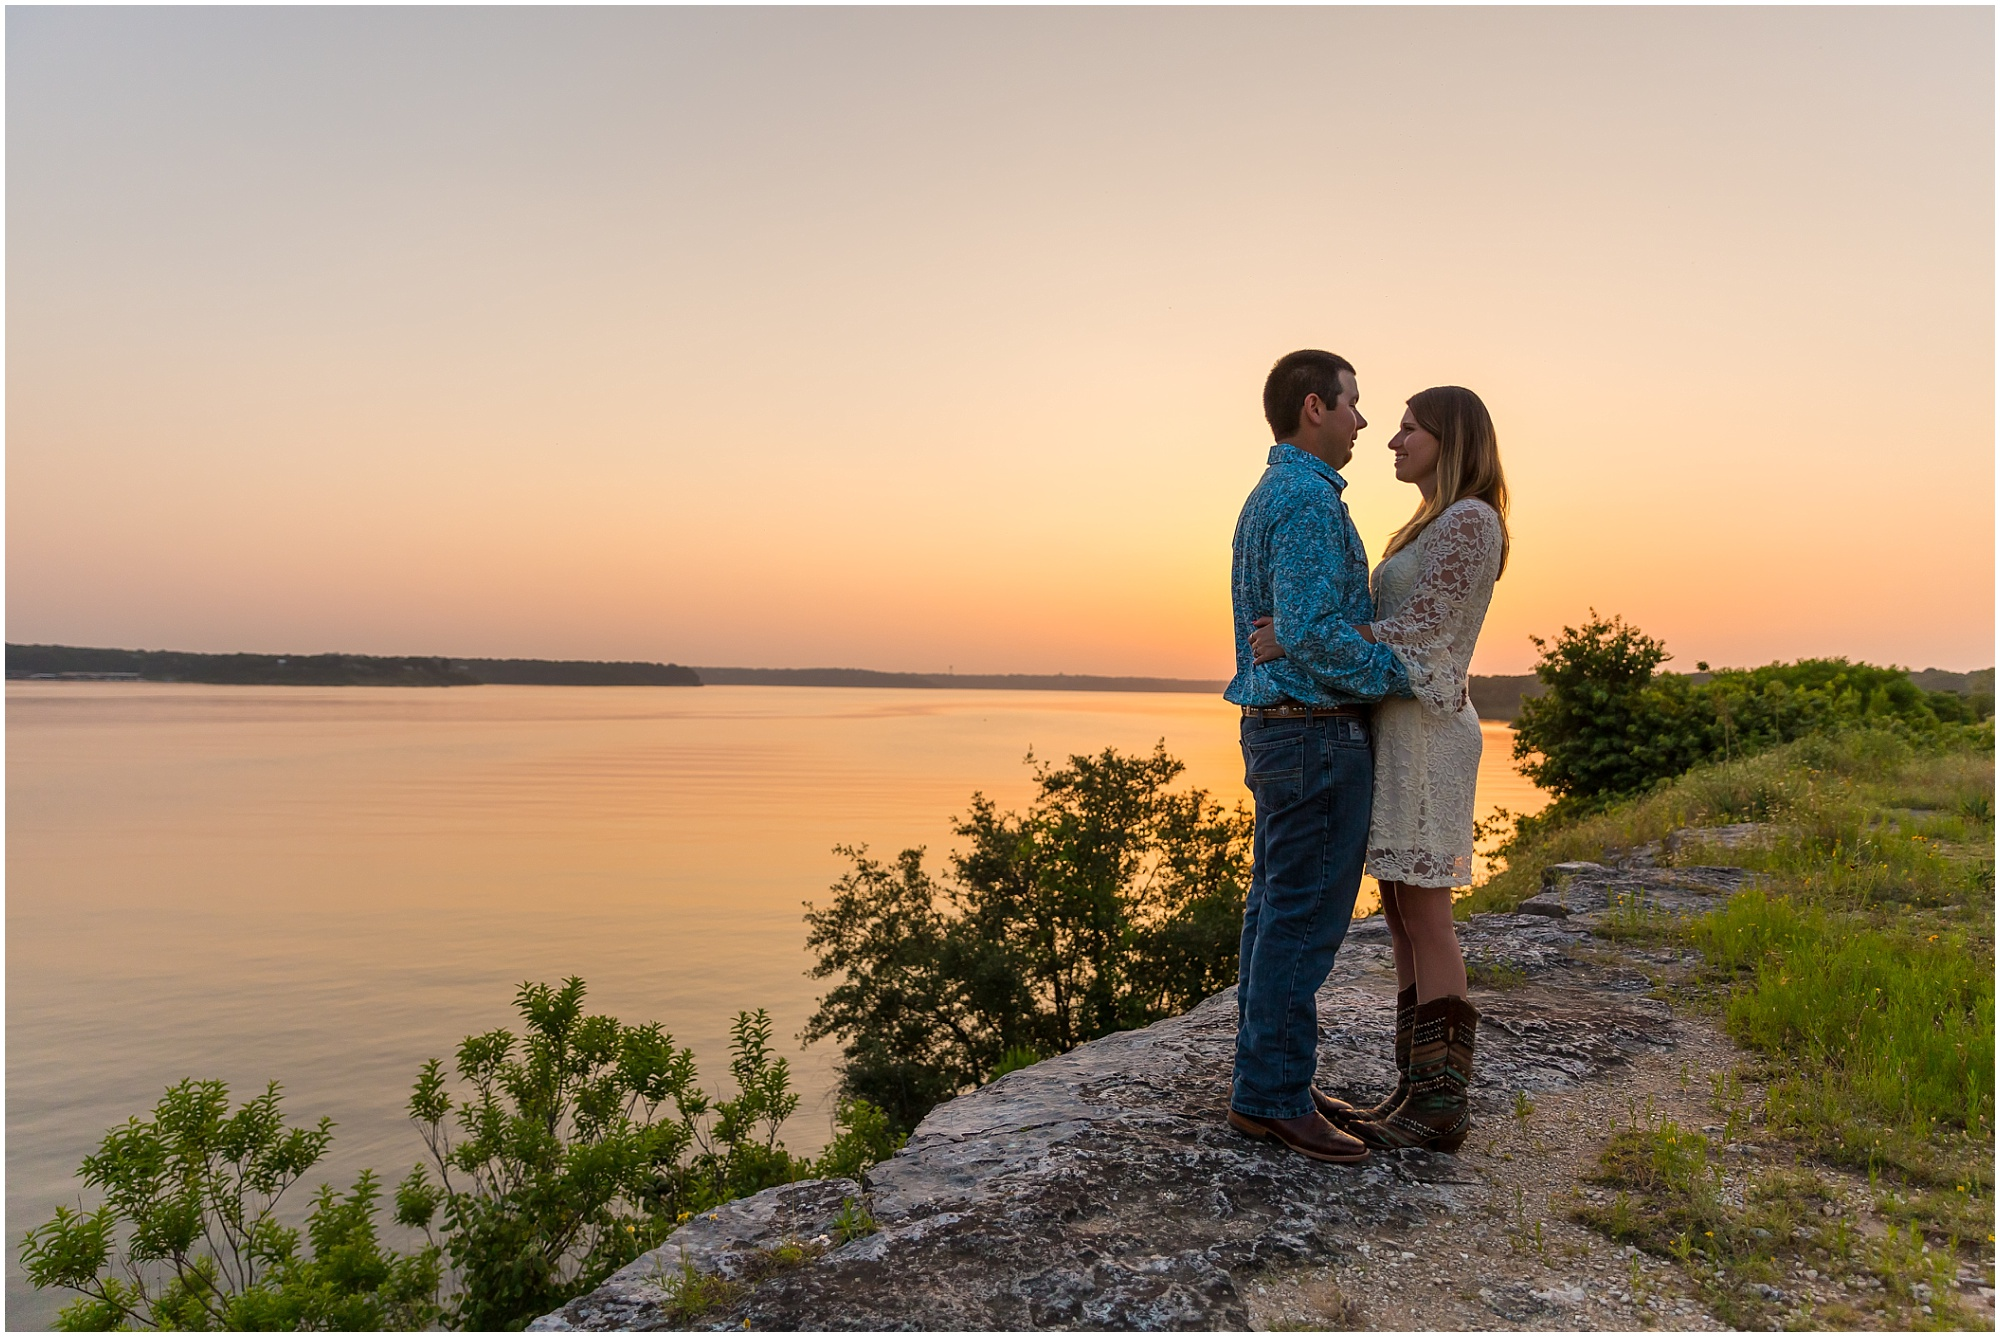 A couple embraces at the Belton Lake Dam while the sun sets over the lake behind them - Jason & Melaina Photography - www.jasonandmelaina.com